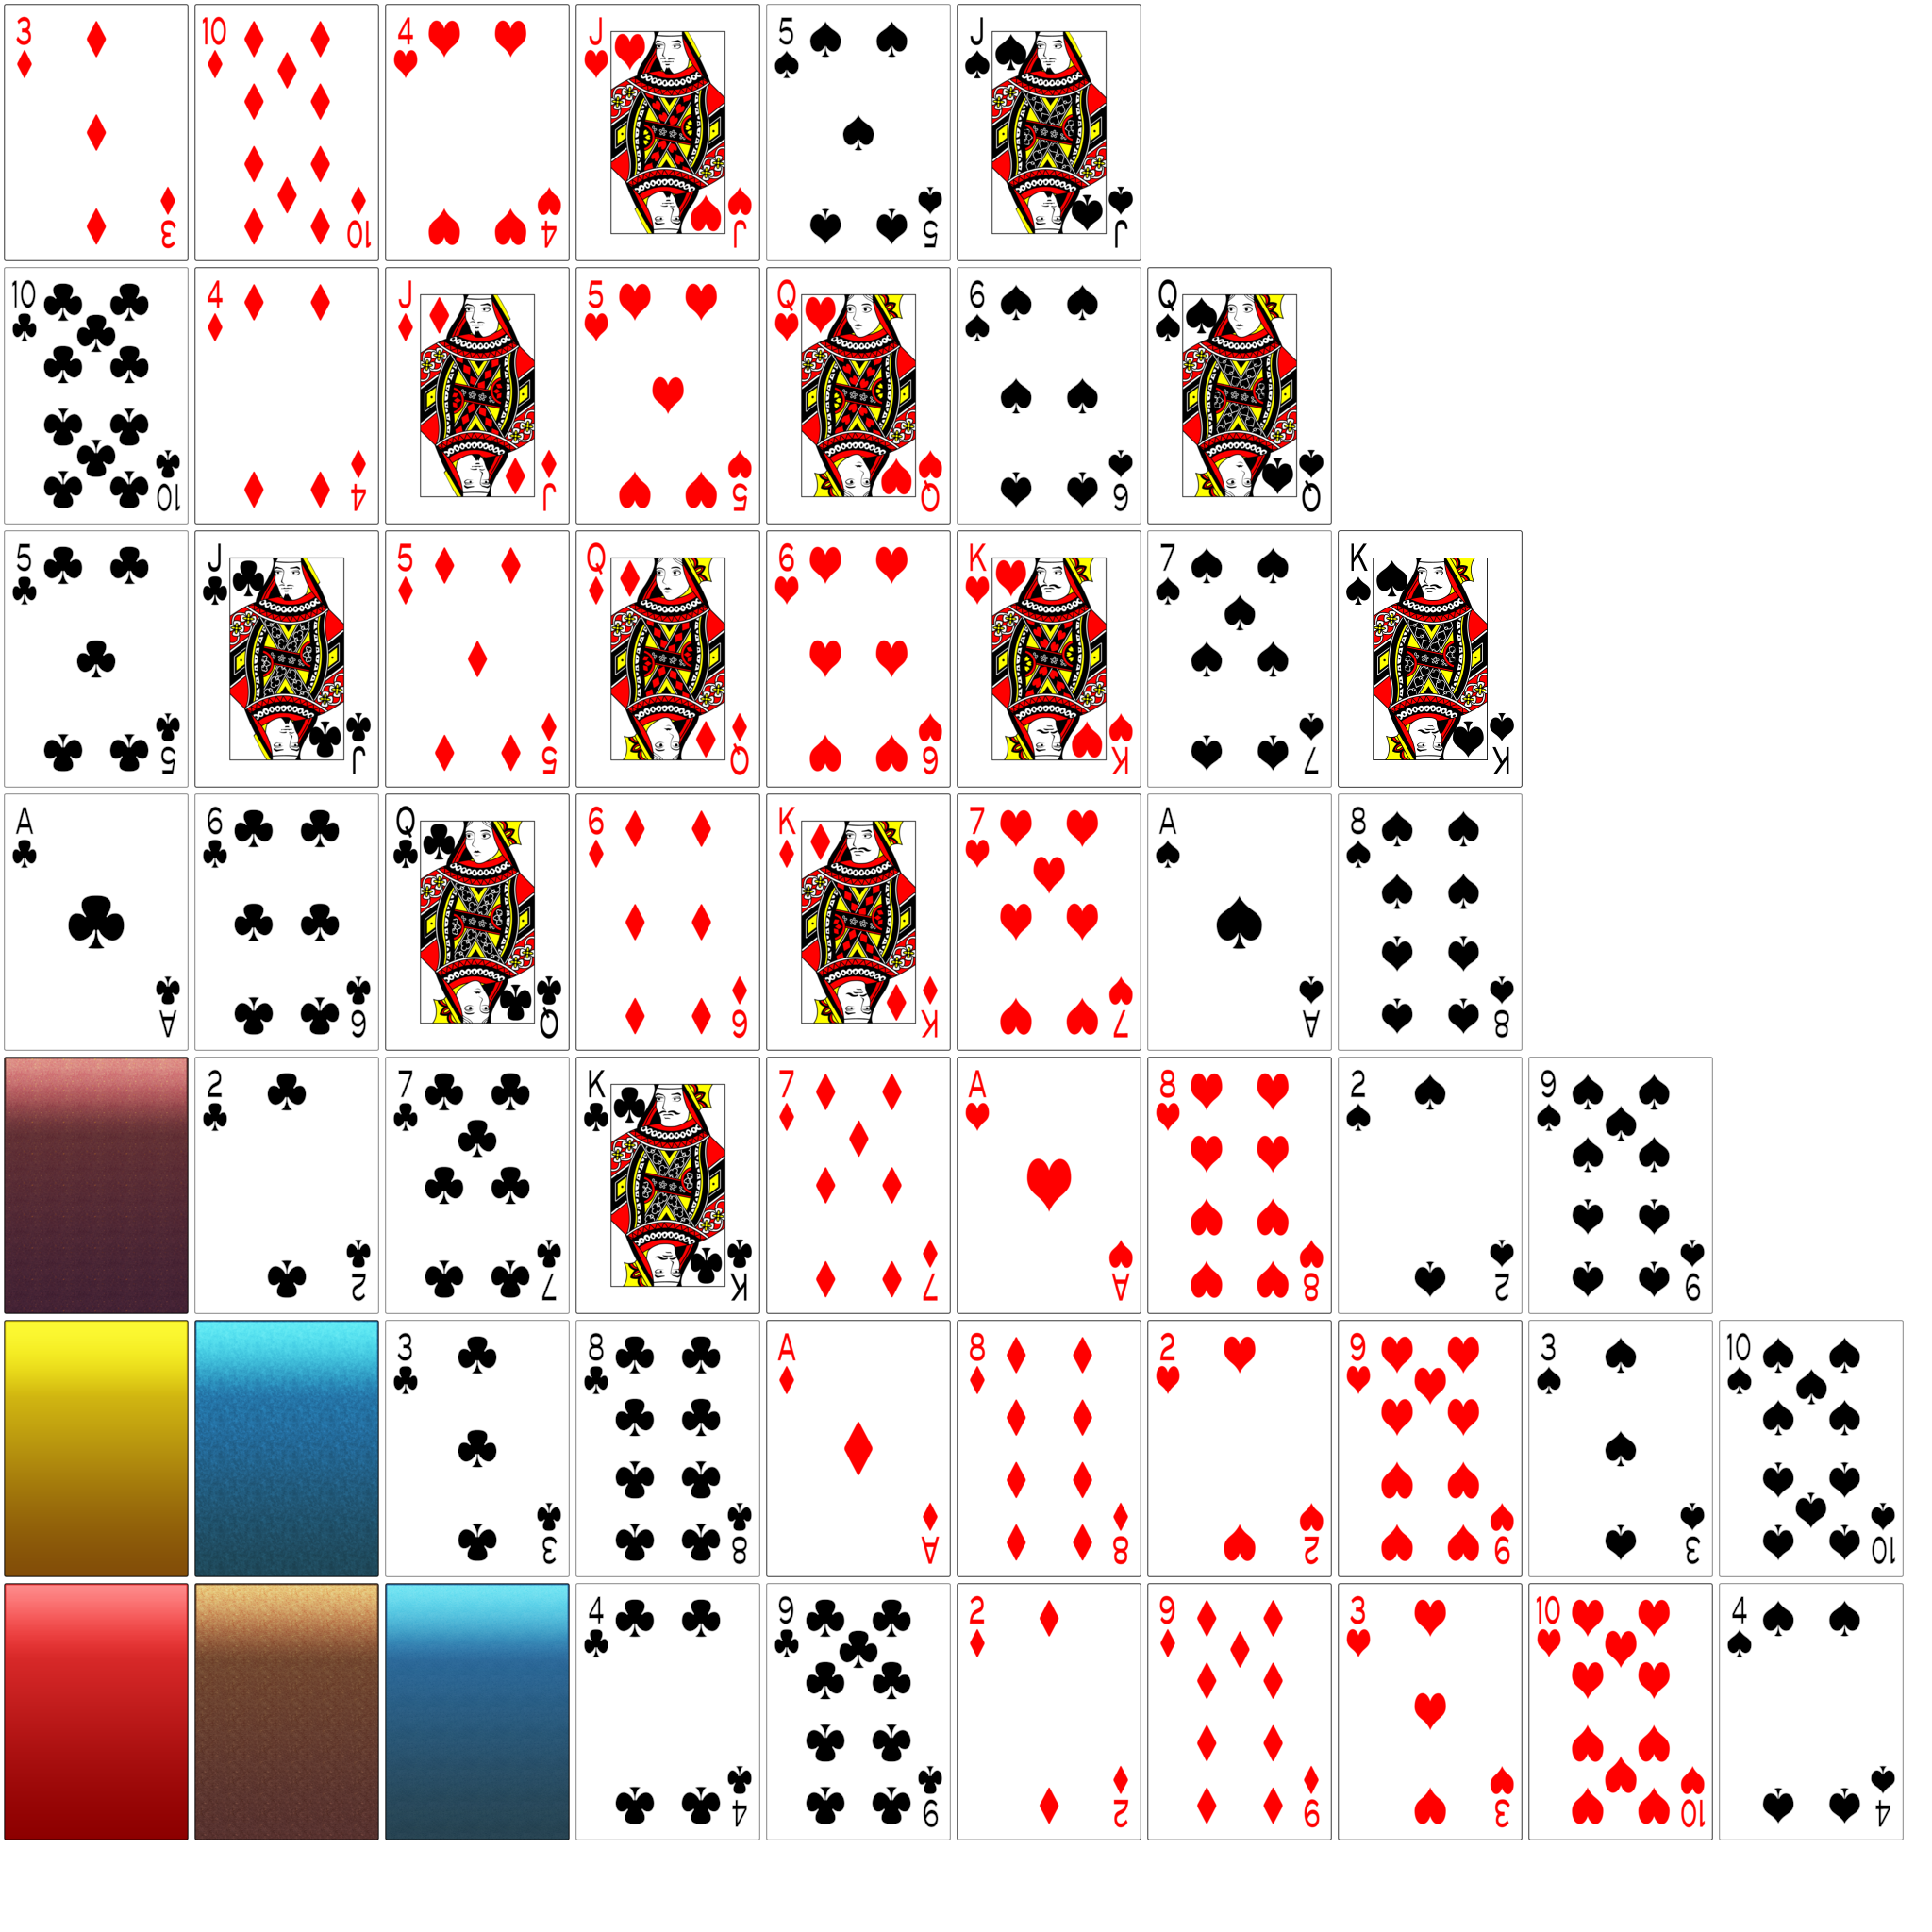 A simple card game. Cards .png png clipart freeuse stock